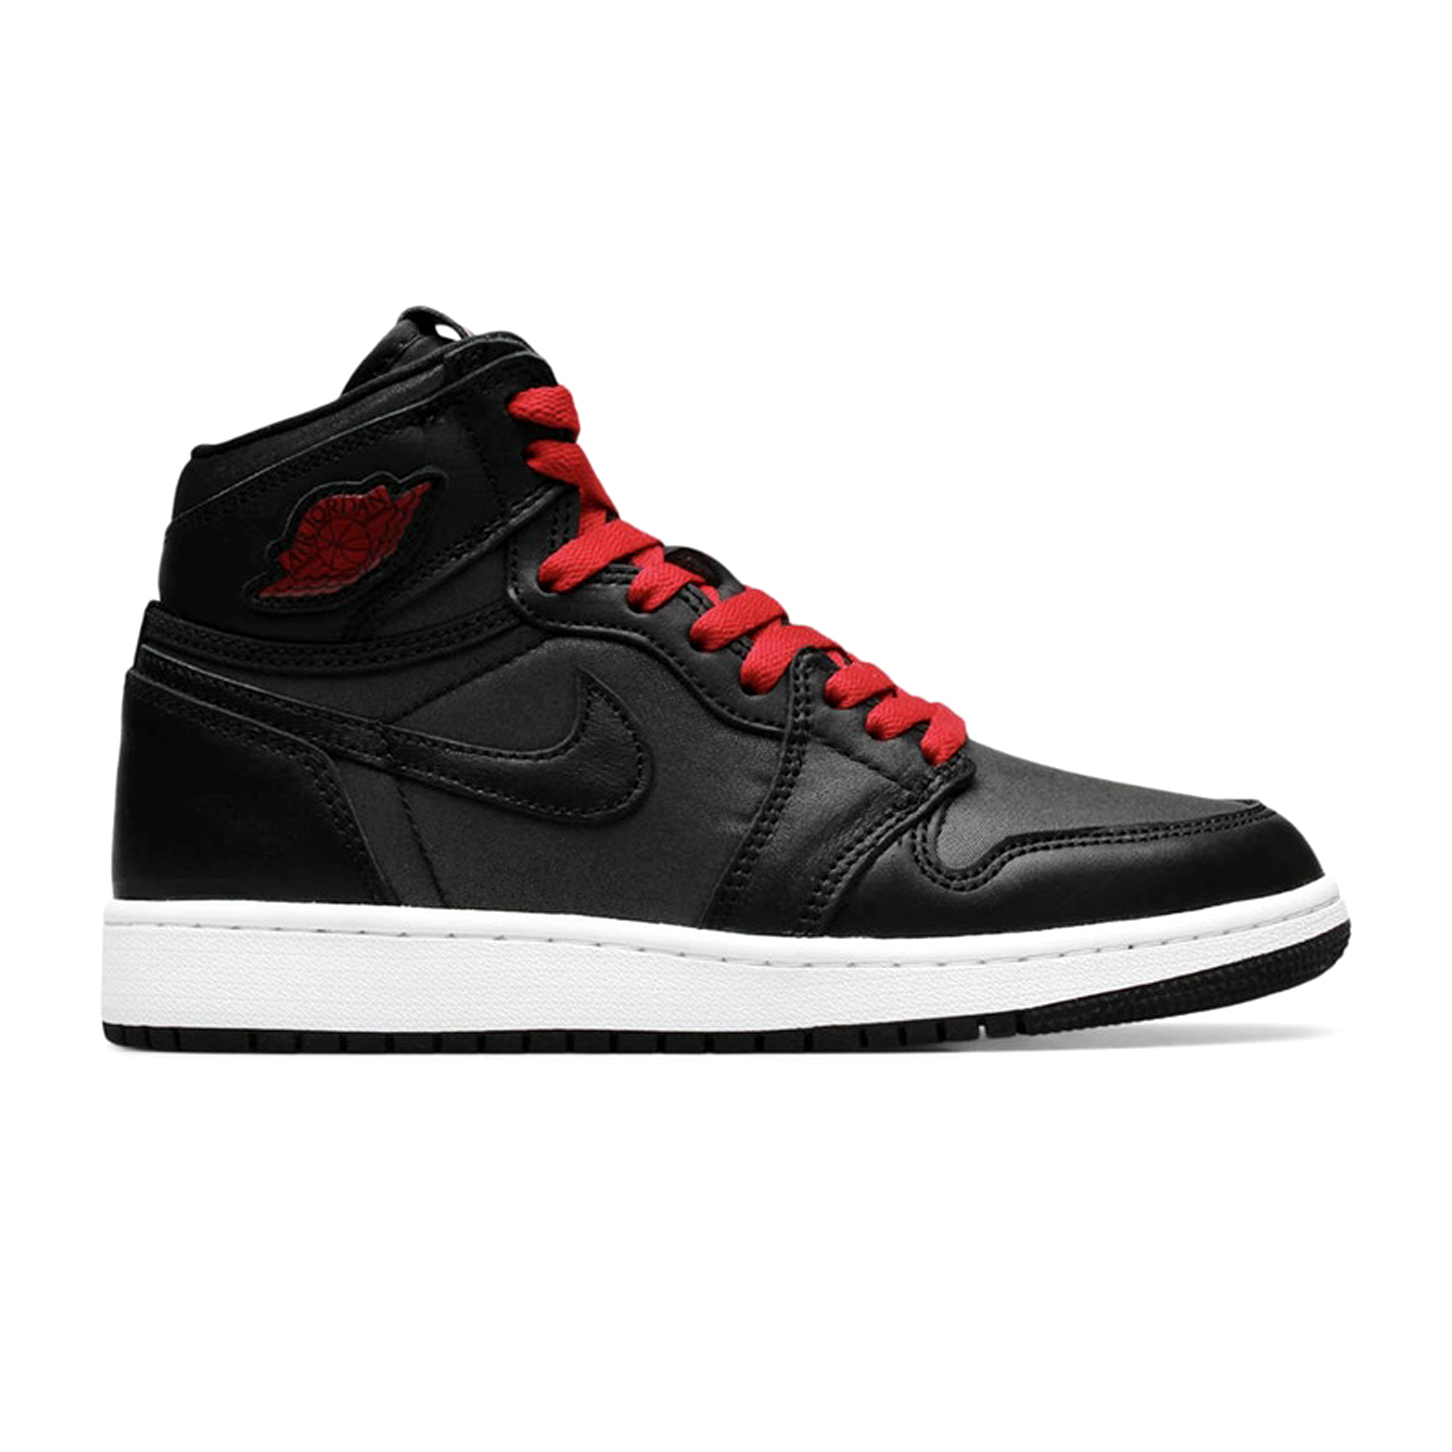 Air-Jordan-1-Retro-High-Black-Gym-Red-Black